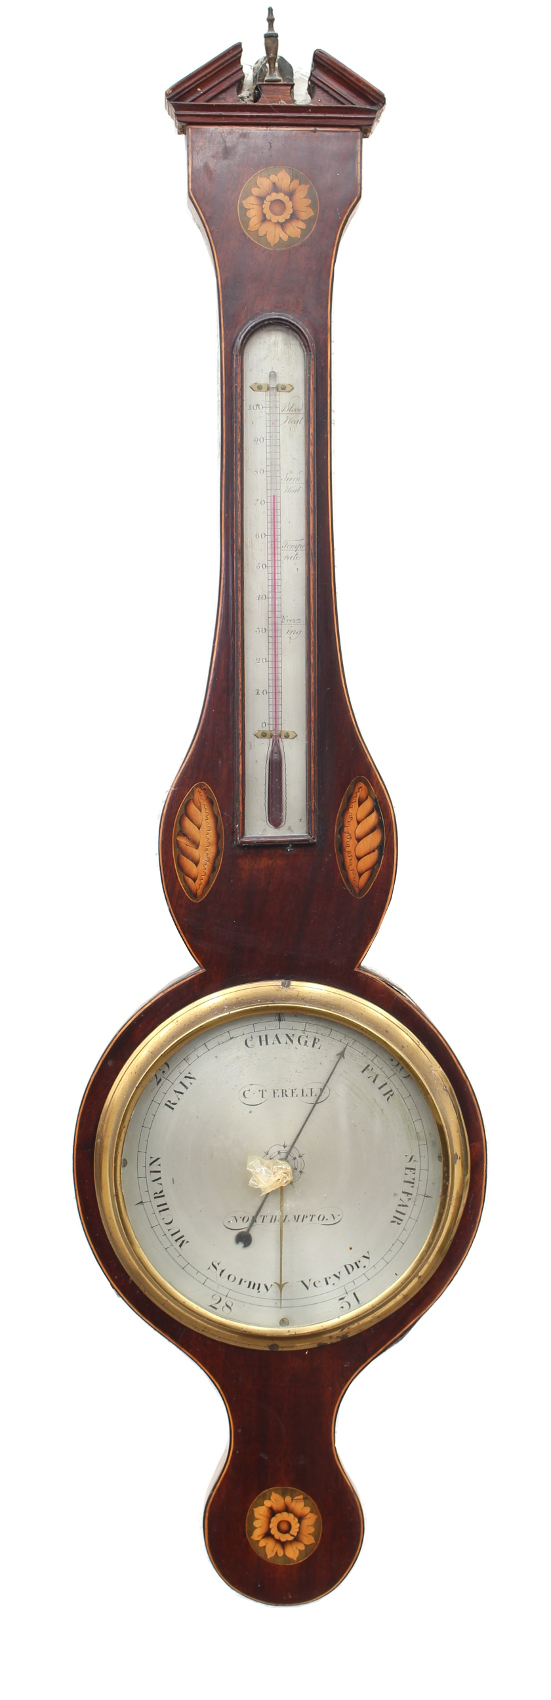 Lot 185 - Property of a deceased estate - a 19th century mahogany & inlaid banjo barometer, the 8.5-inch